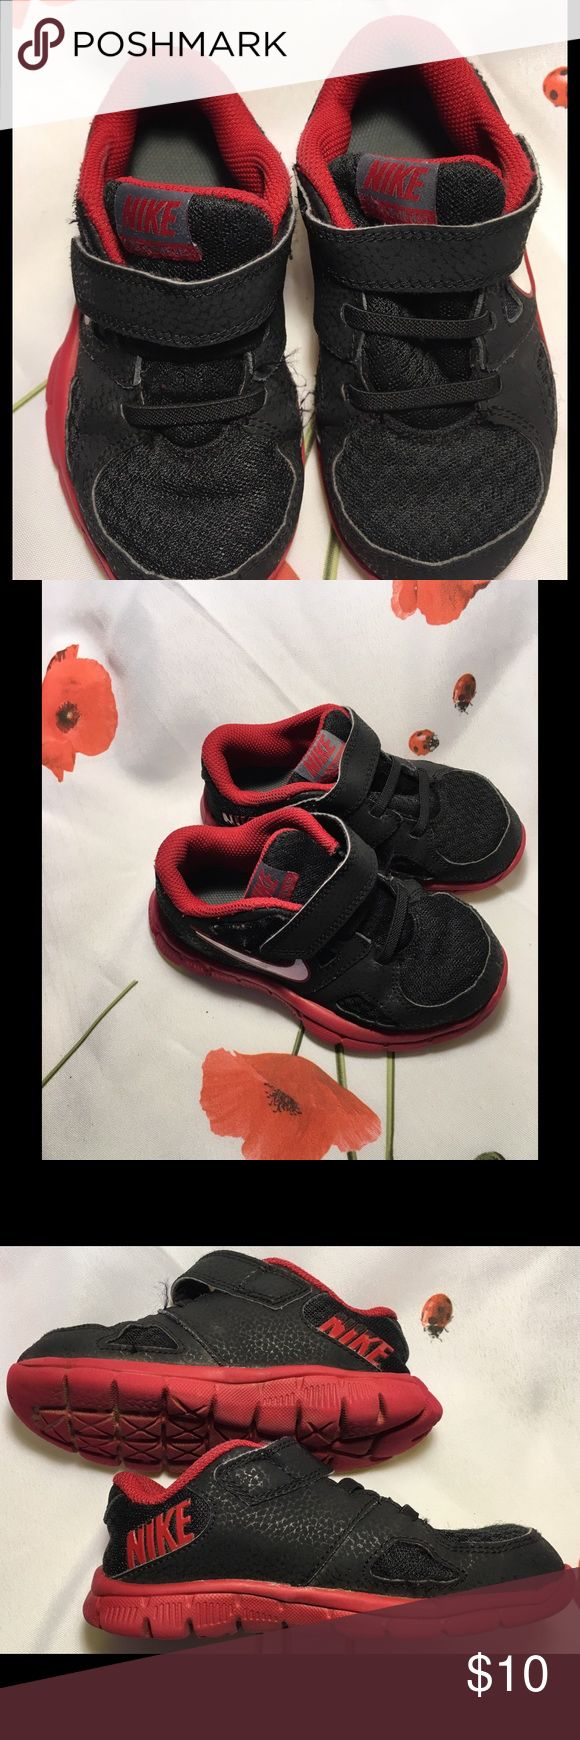 Nike Sneakers red & Black 25% BUNDLES 💙 DISCOUNT Boys Nike tennis shoes Velcro fasteners. These are in wonderful condition. Nike Shoes Sneakers